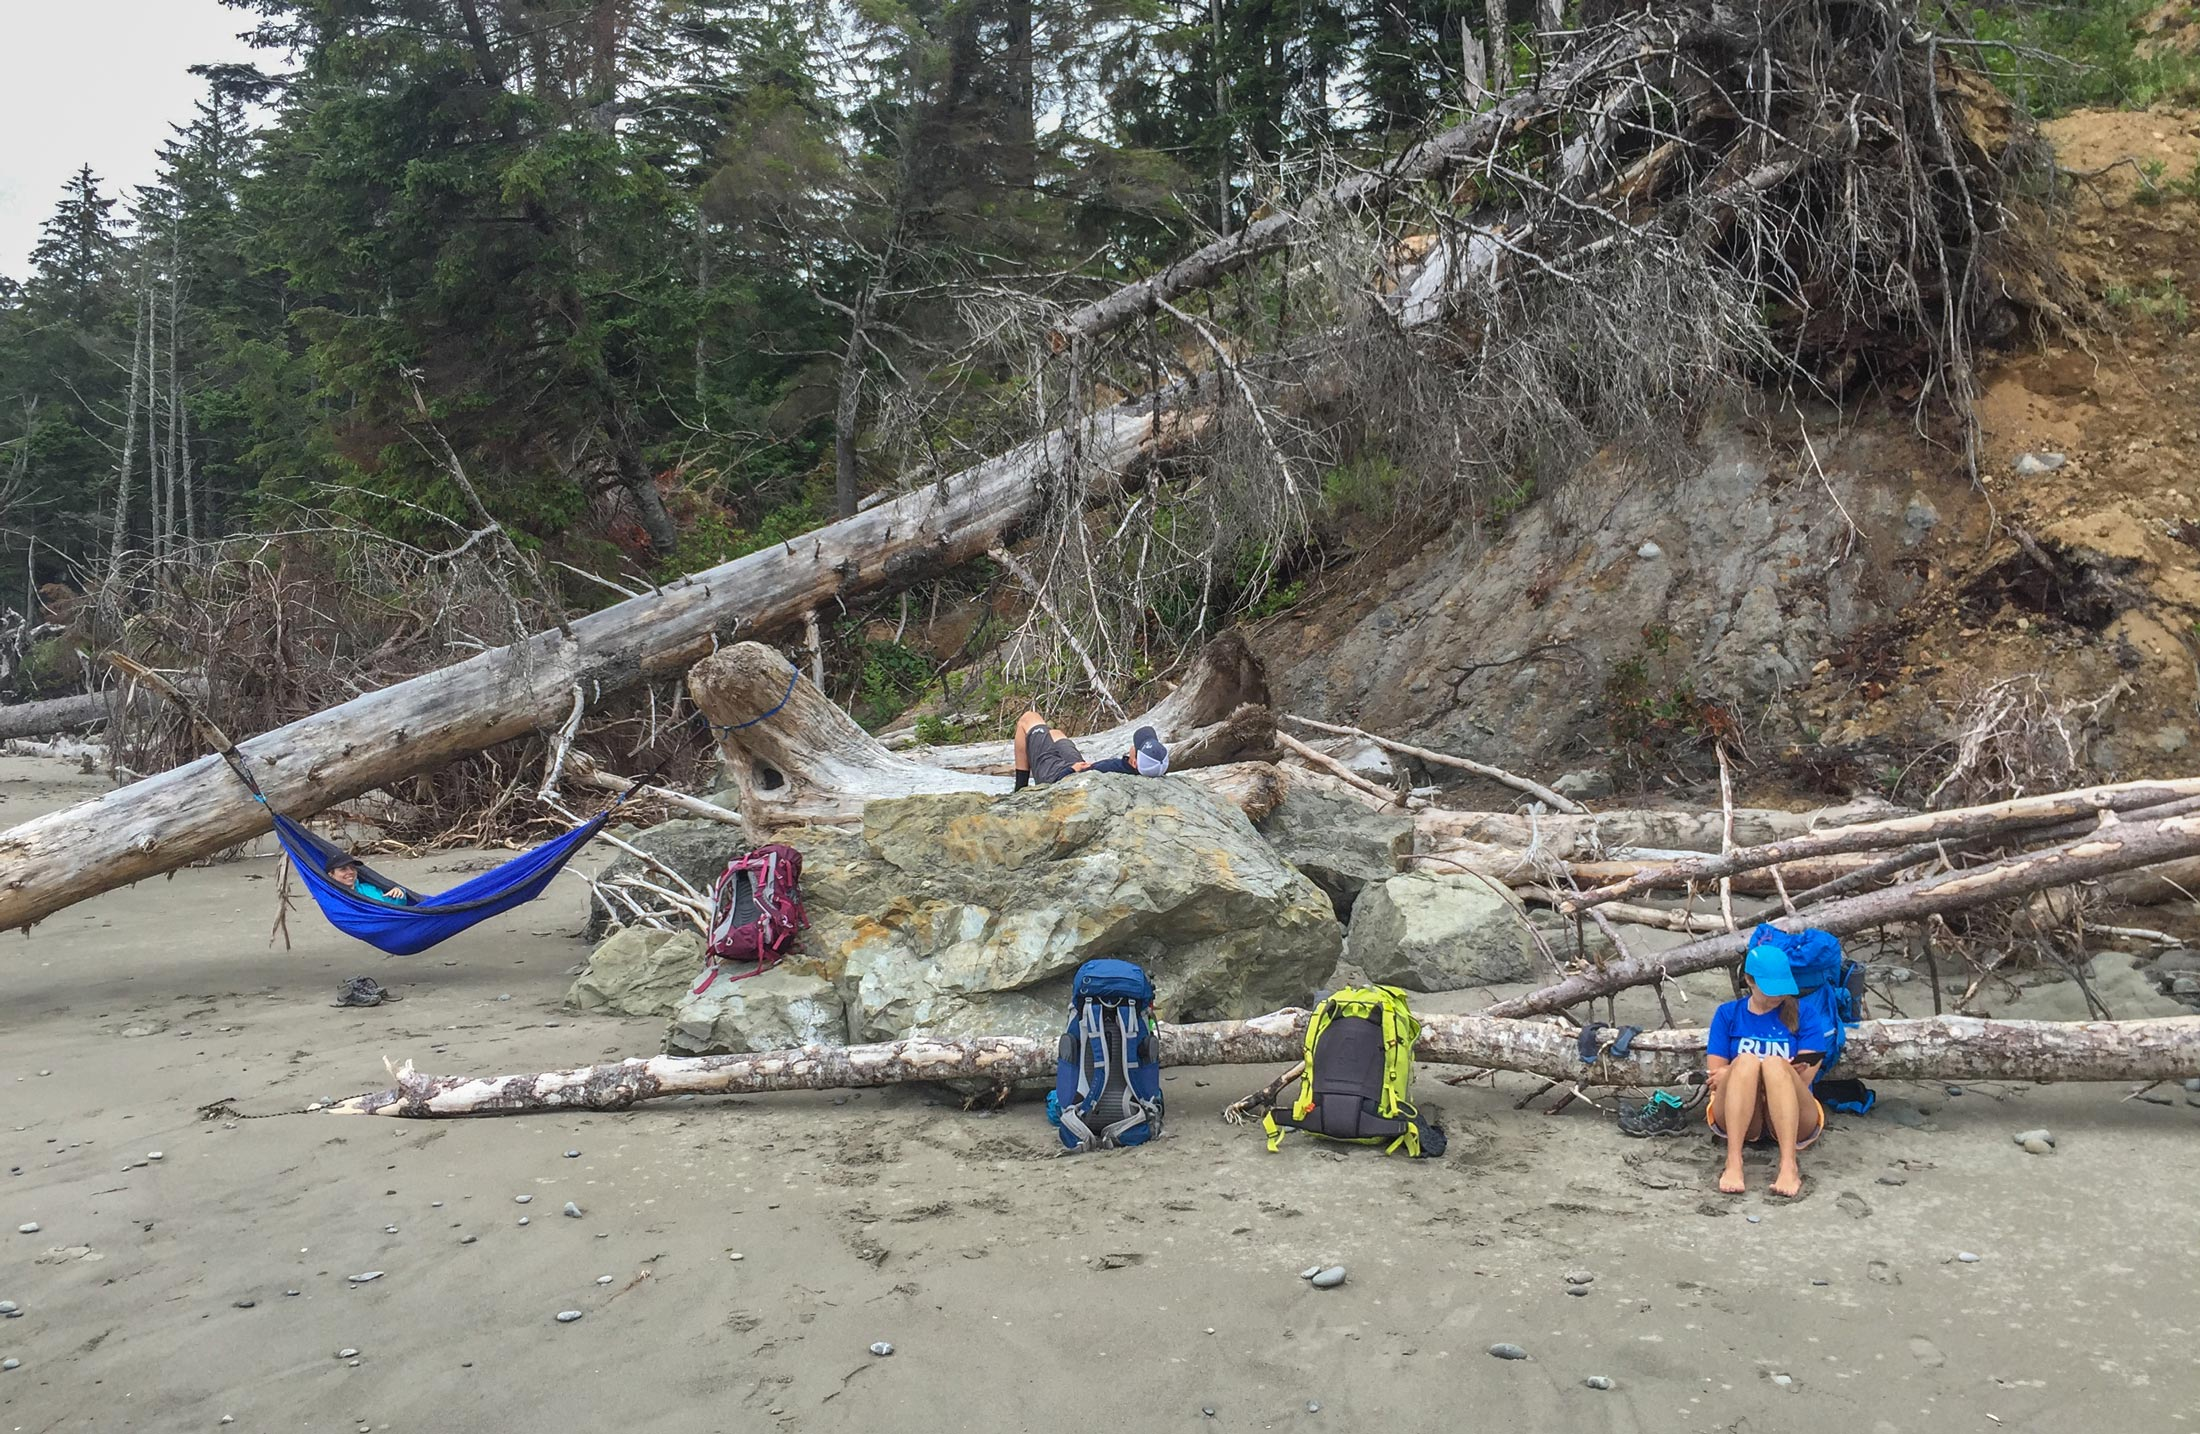 Backpackers wait for the tide to recede.